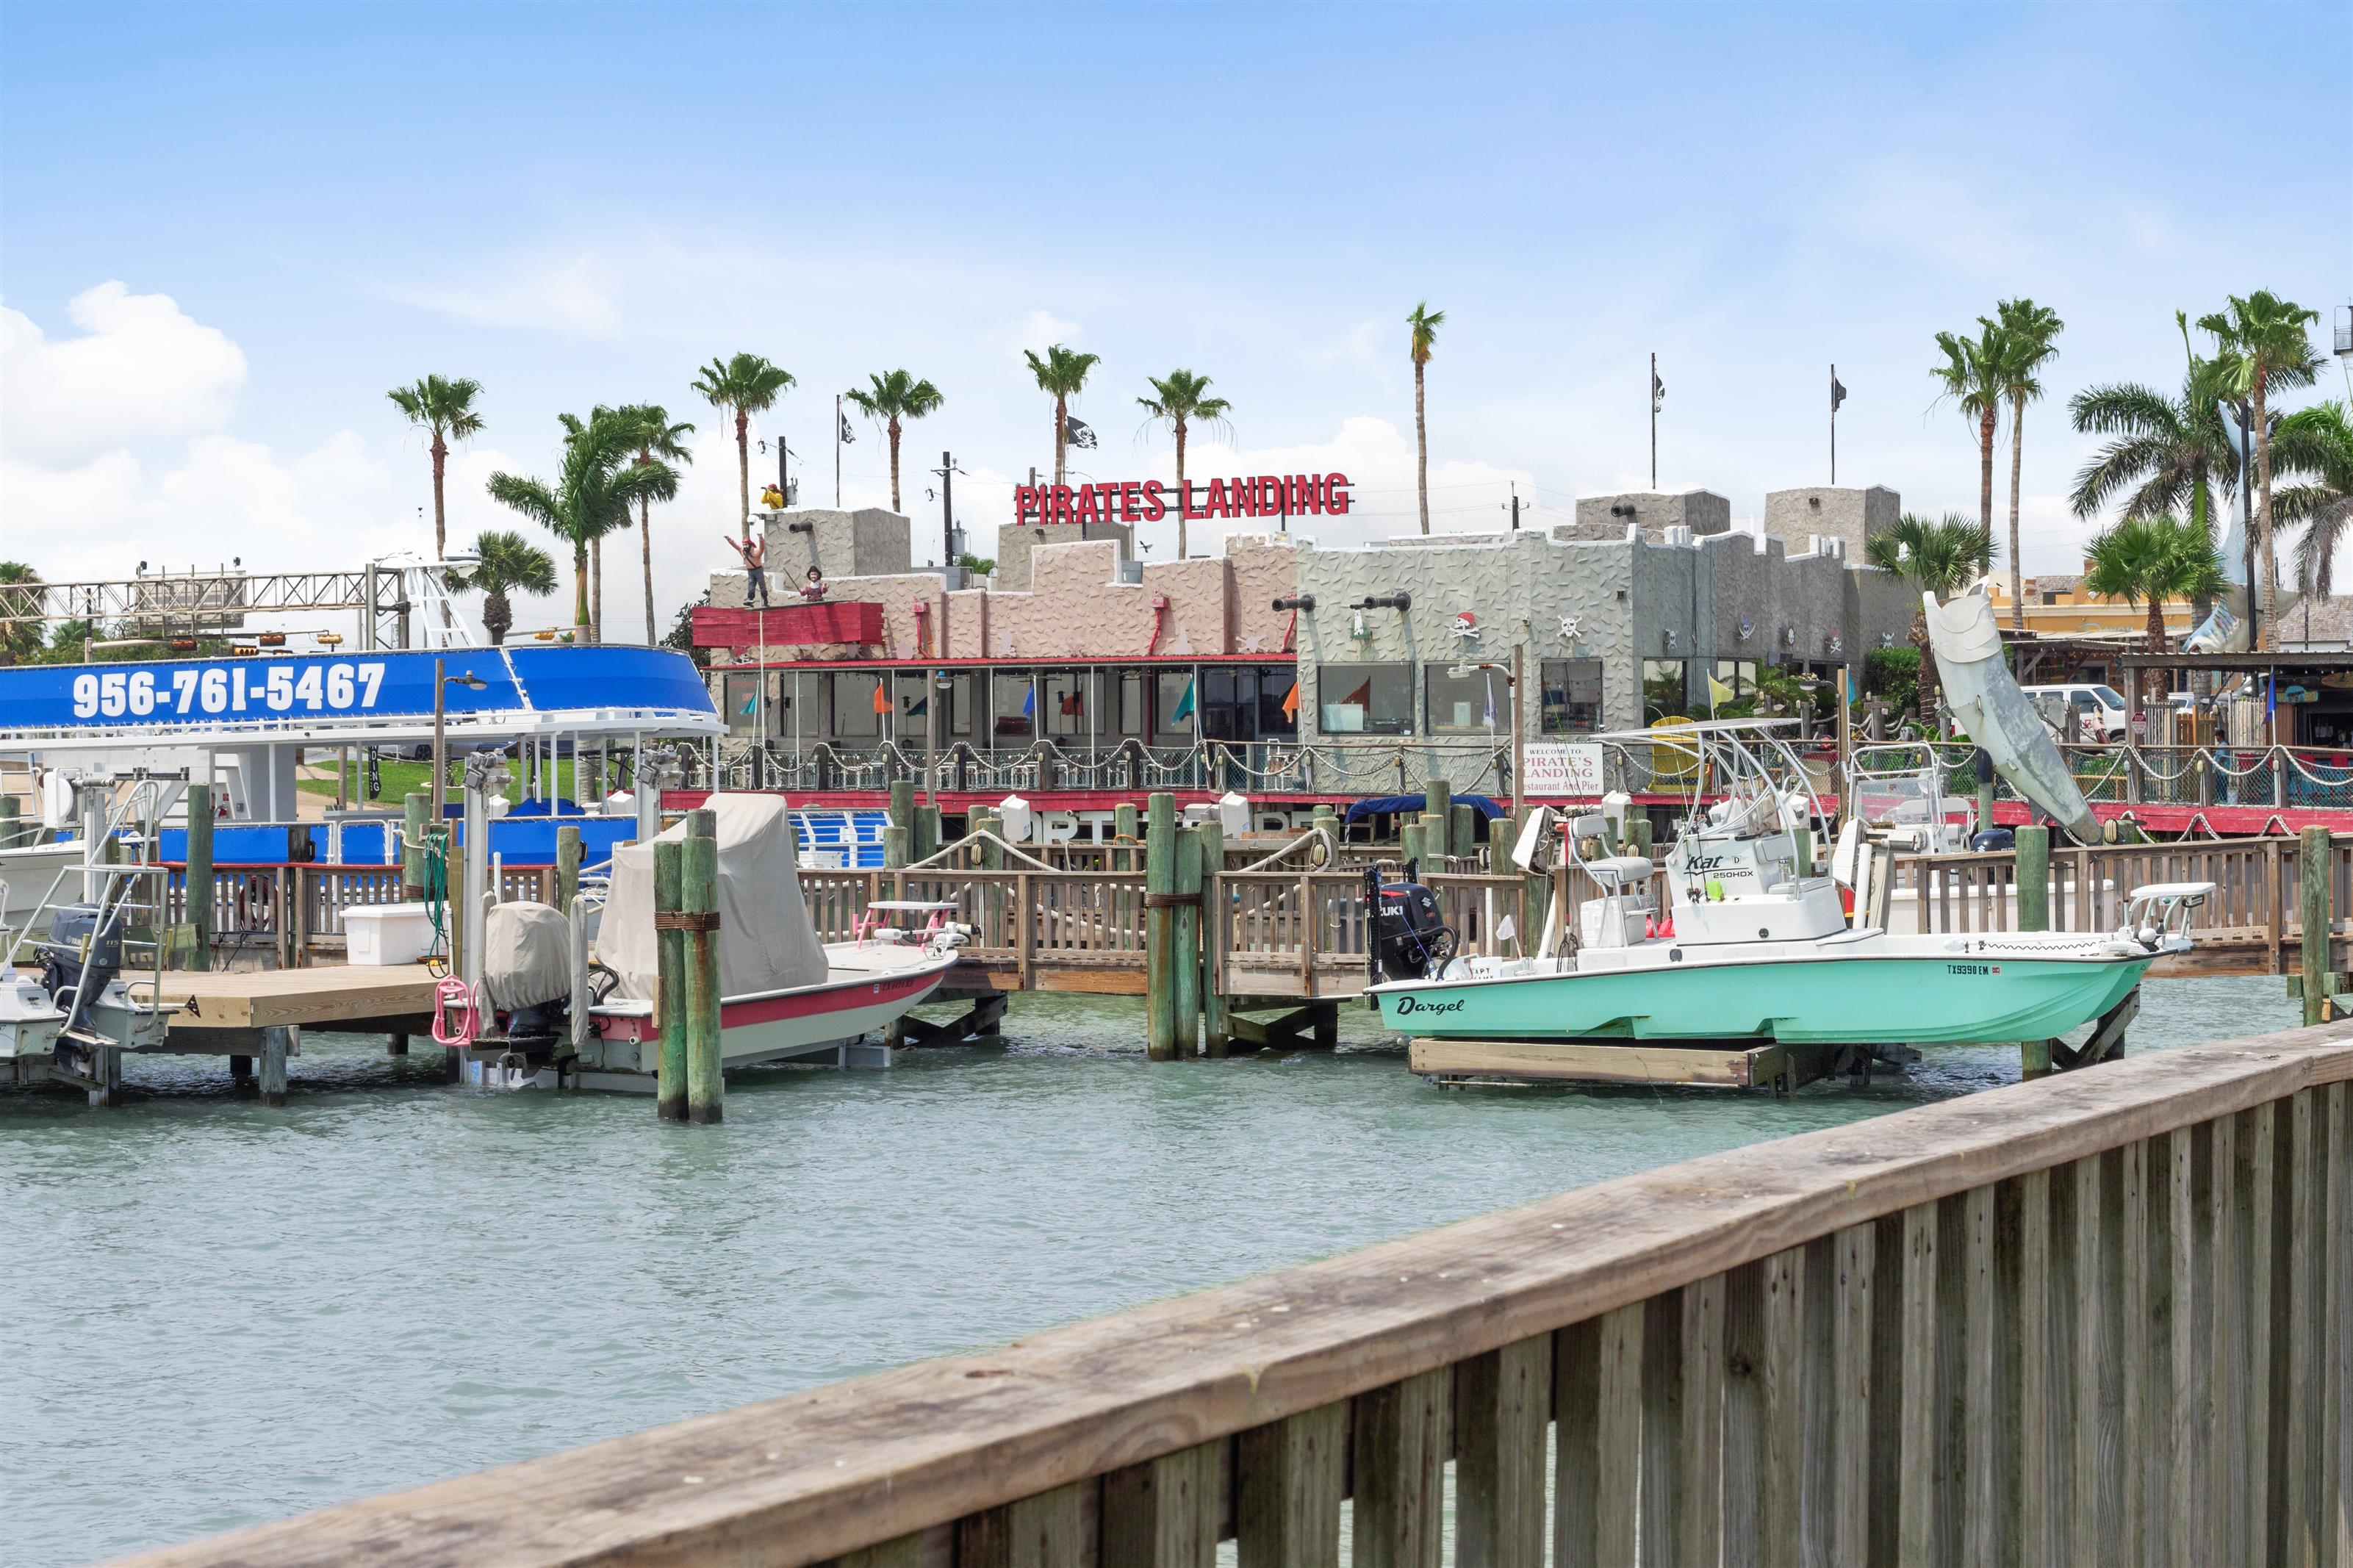 view of the restaurants on the Pier from the boardwalk, boats docked in harbor